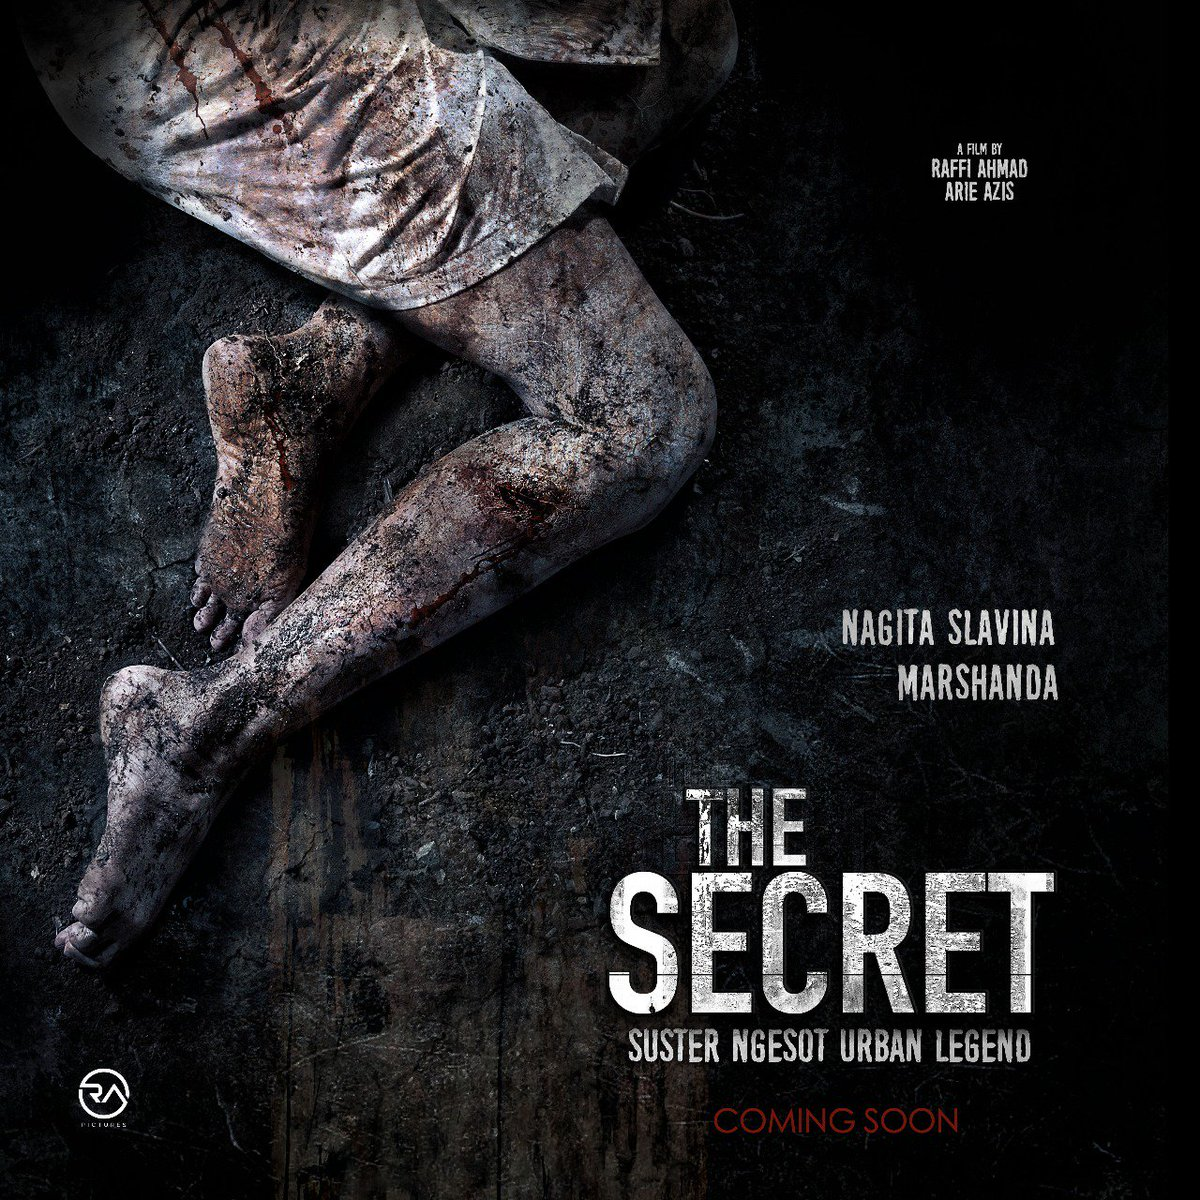 Suster Ngesot Urban Legend Film By Raffi Ahmad And Arie Azis Coming Soon  Follow Ig Filmthesecret Likes Facebook Page Film The Secret